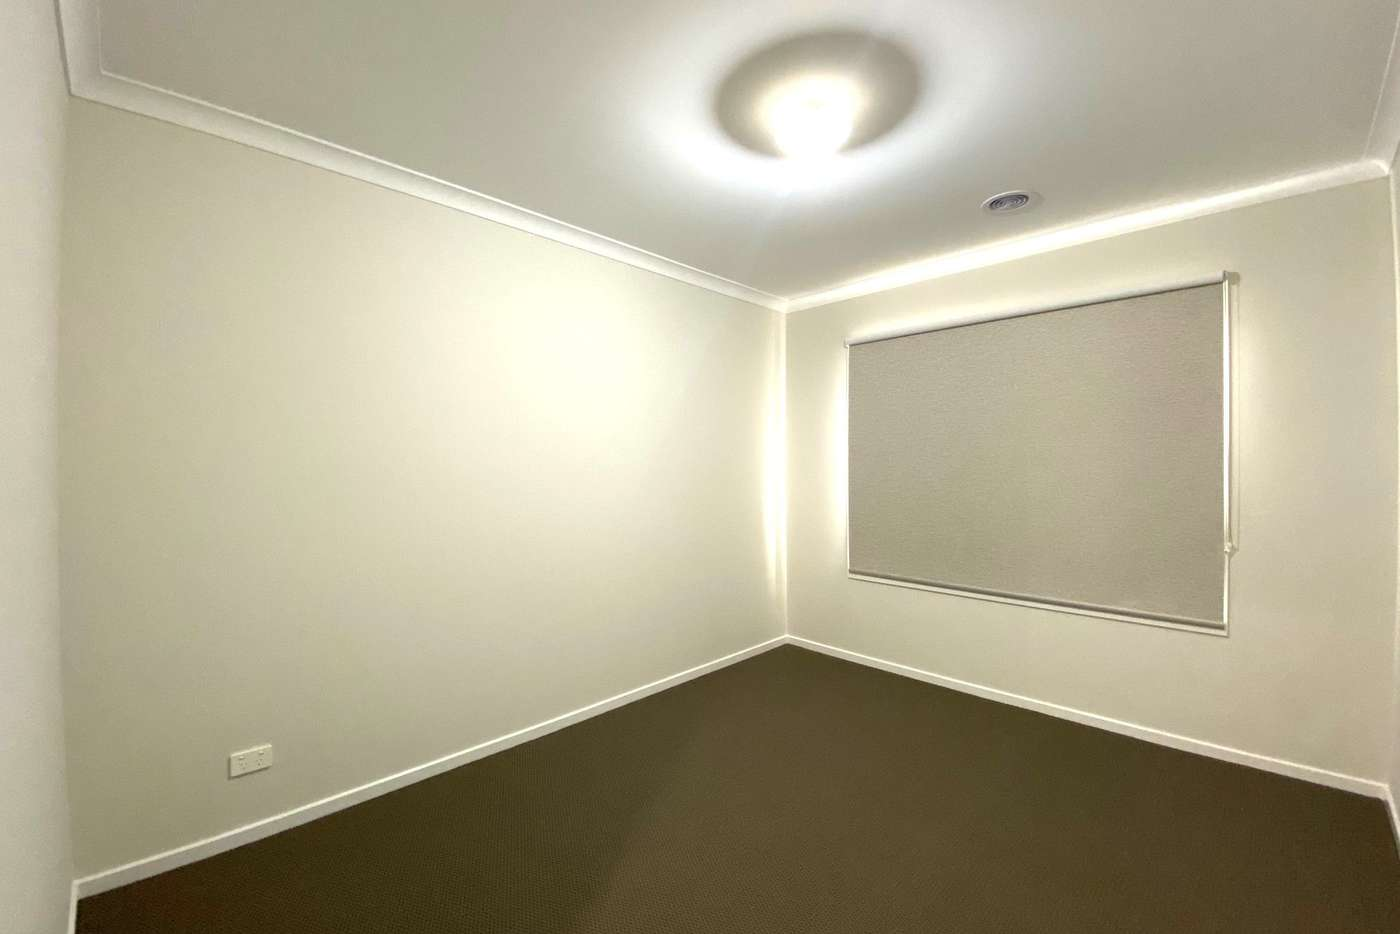 Seventh view of Homely house listing, 20 Coach Drive, Donnybrook VIC 3064